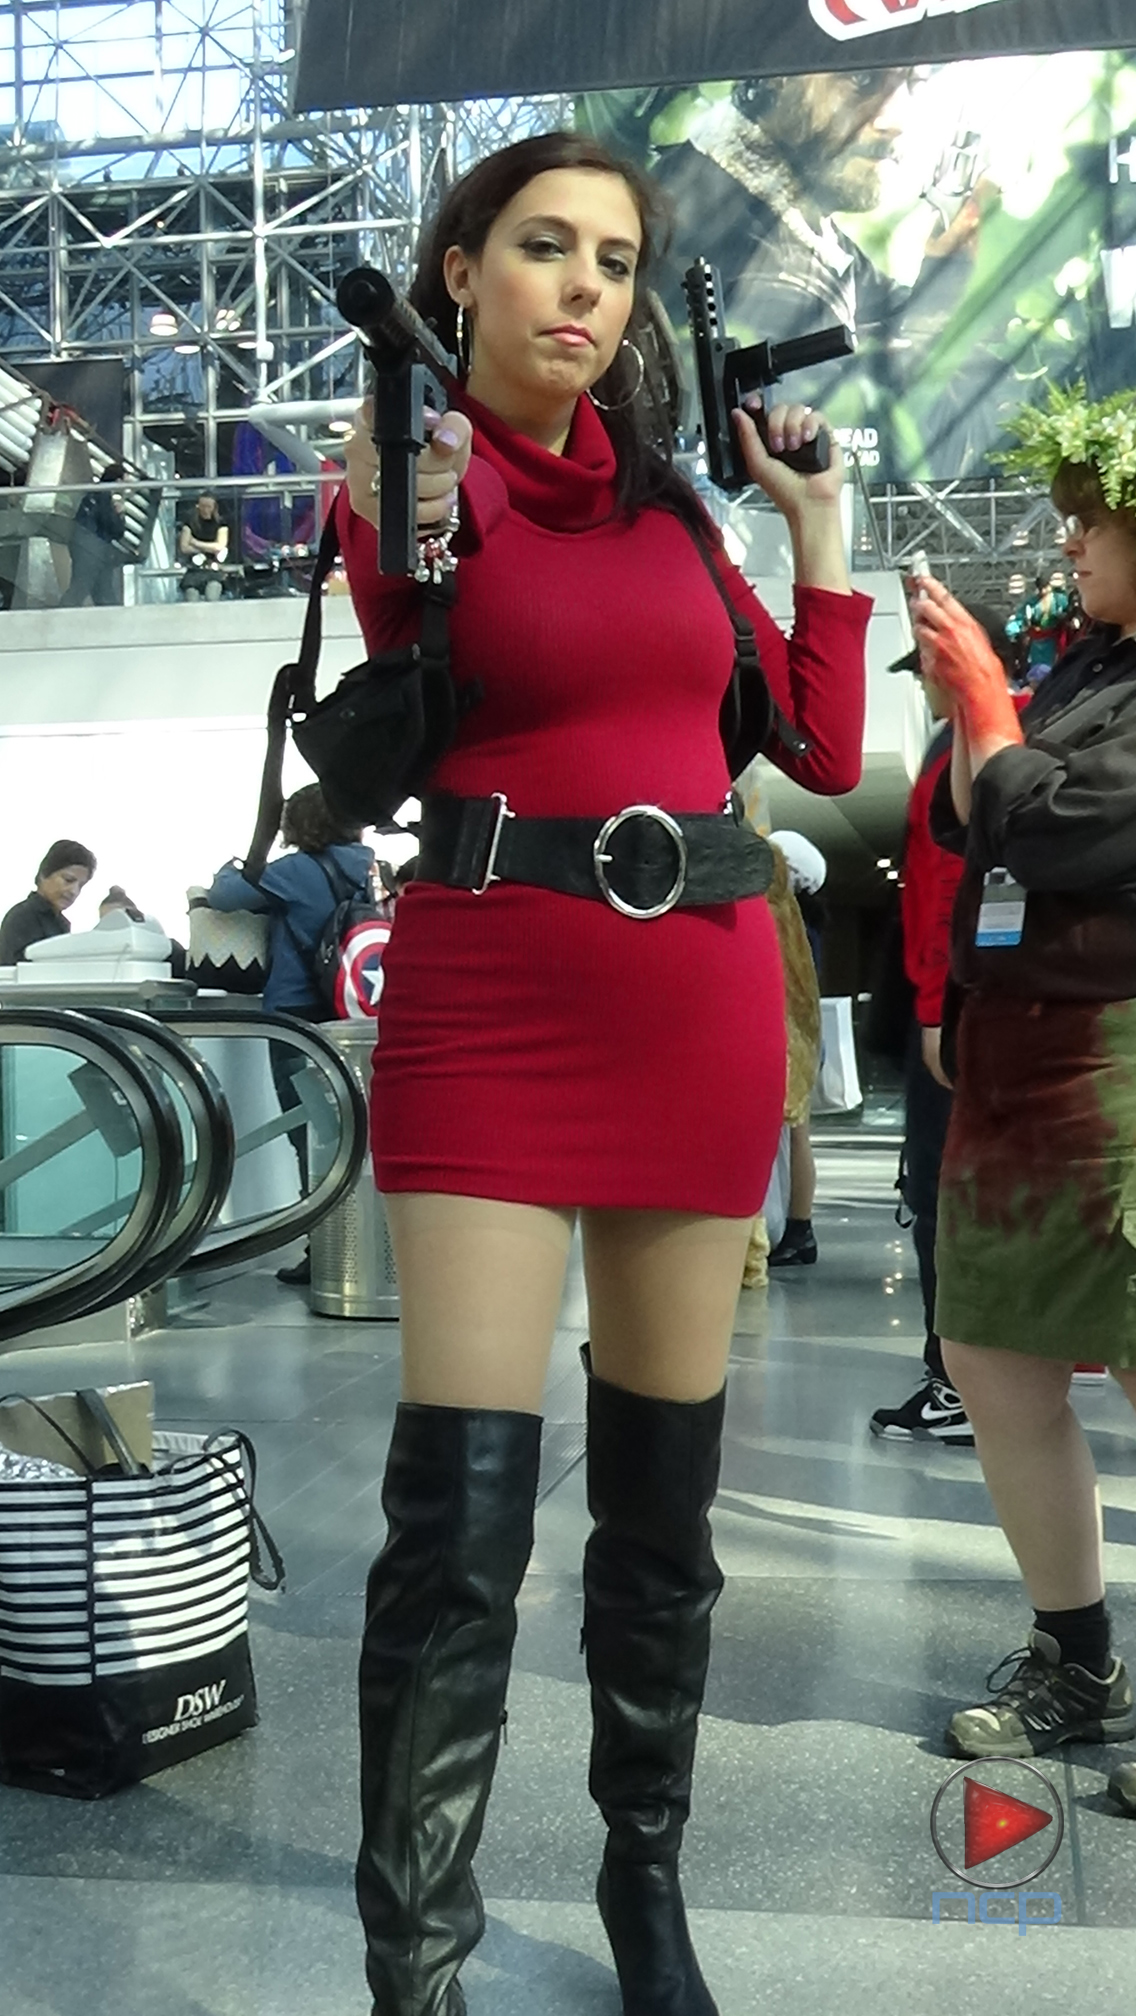 cosplay_Nerd Culture Podcast » Blog Archive » NYCC Cosplay Pics part 2